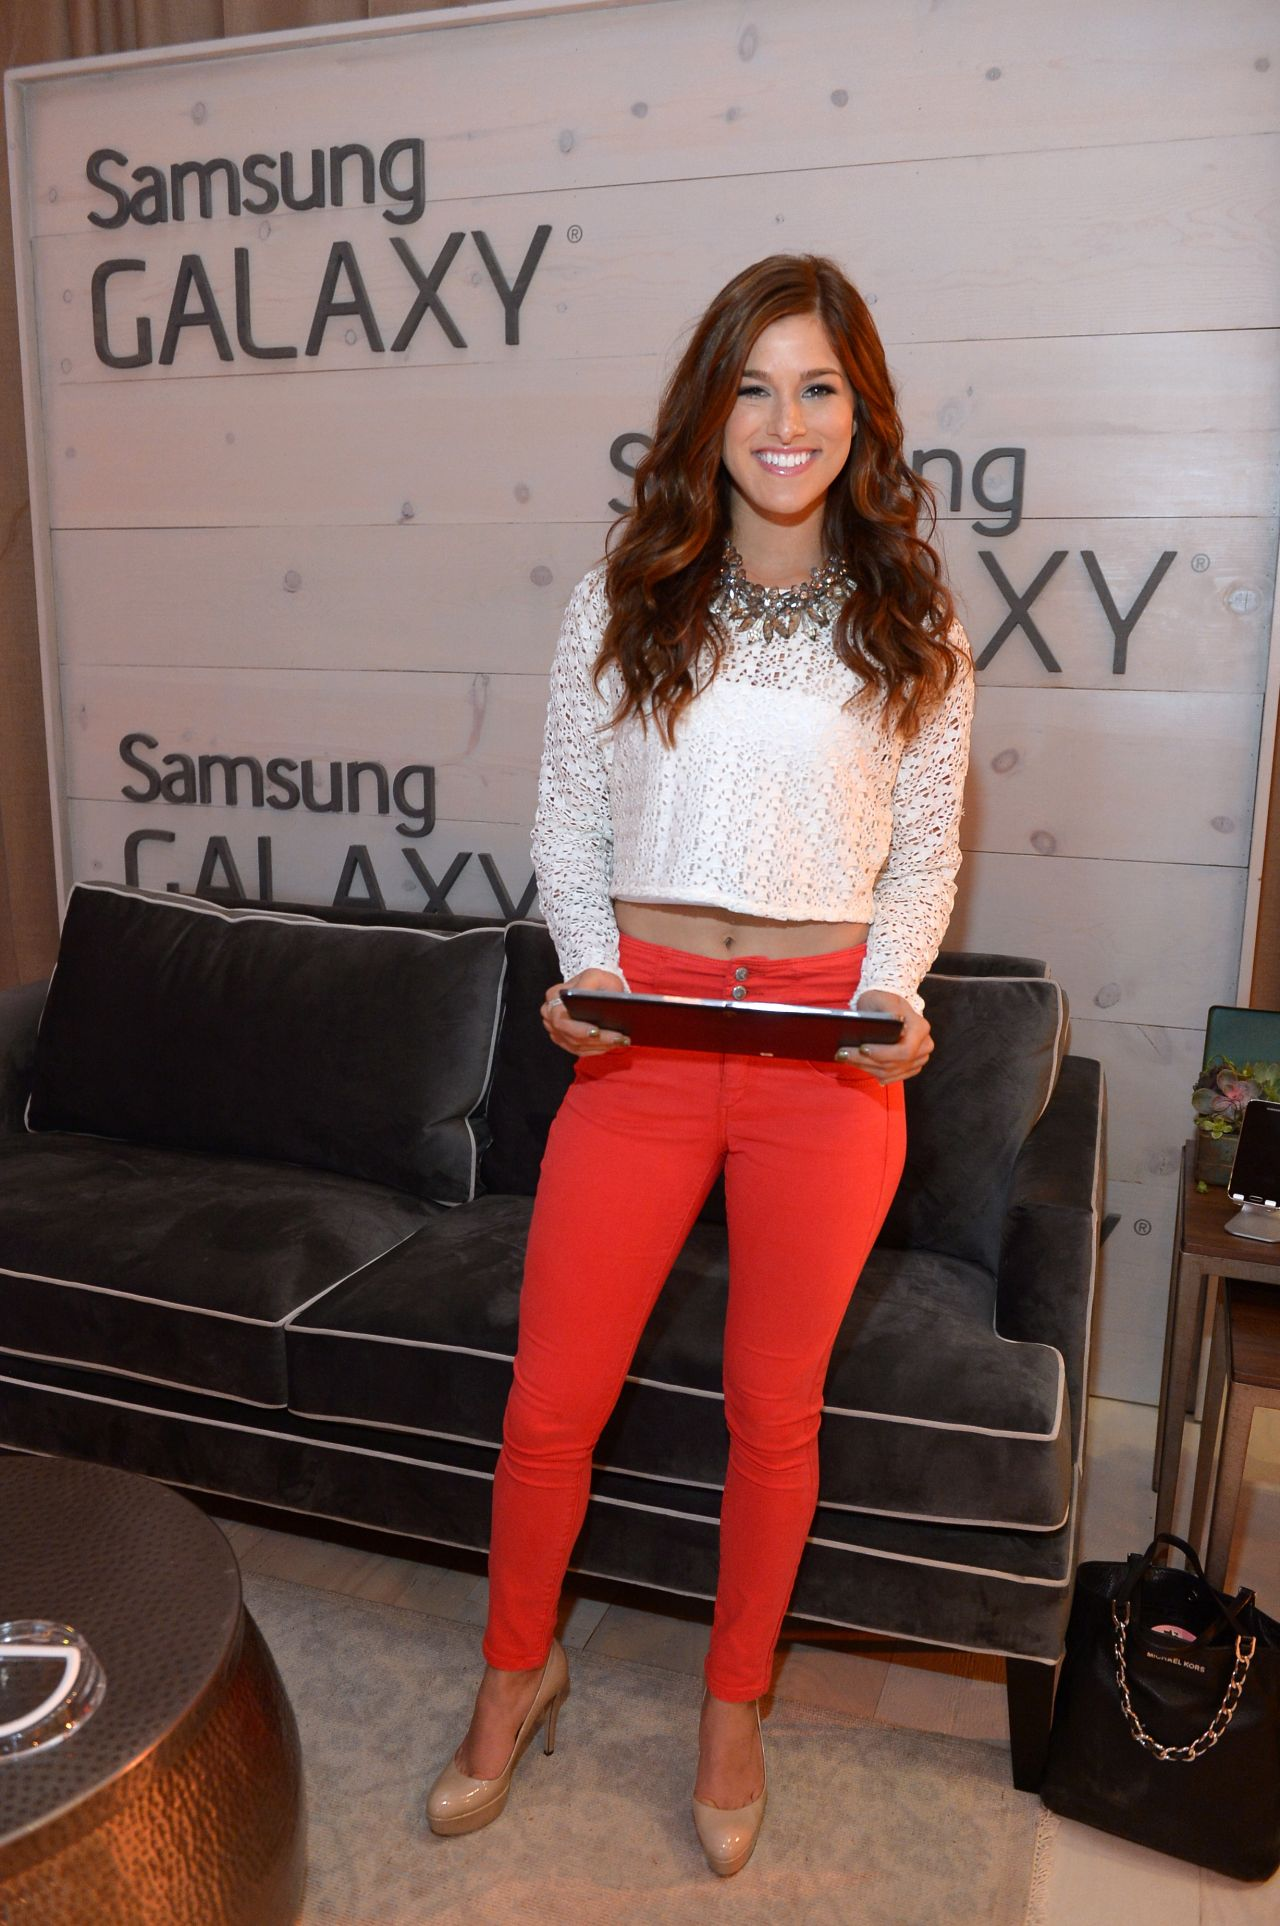 Cassadee Pope in Samsung Galaxy Artist Lounge, 2014 CMA Music Festival in Nashville